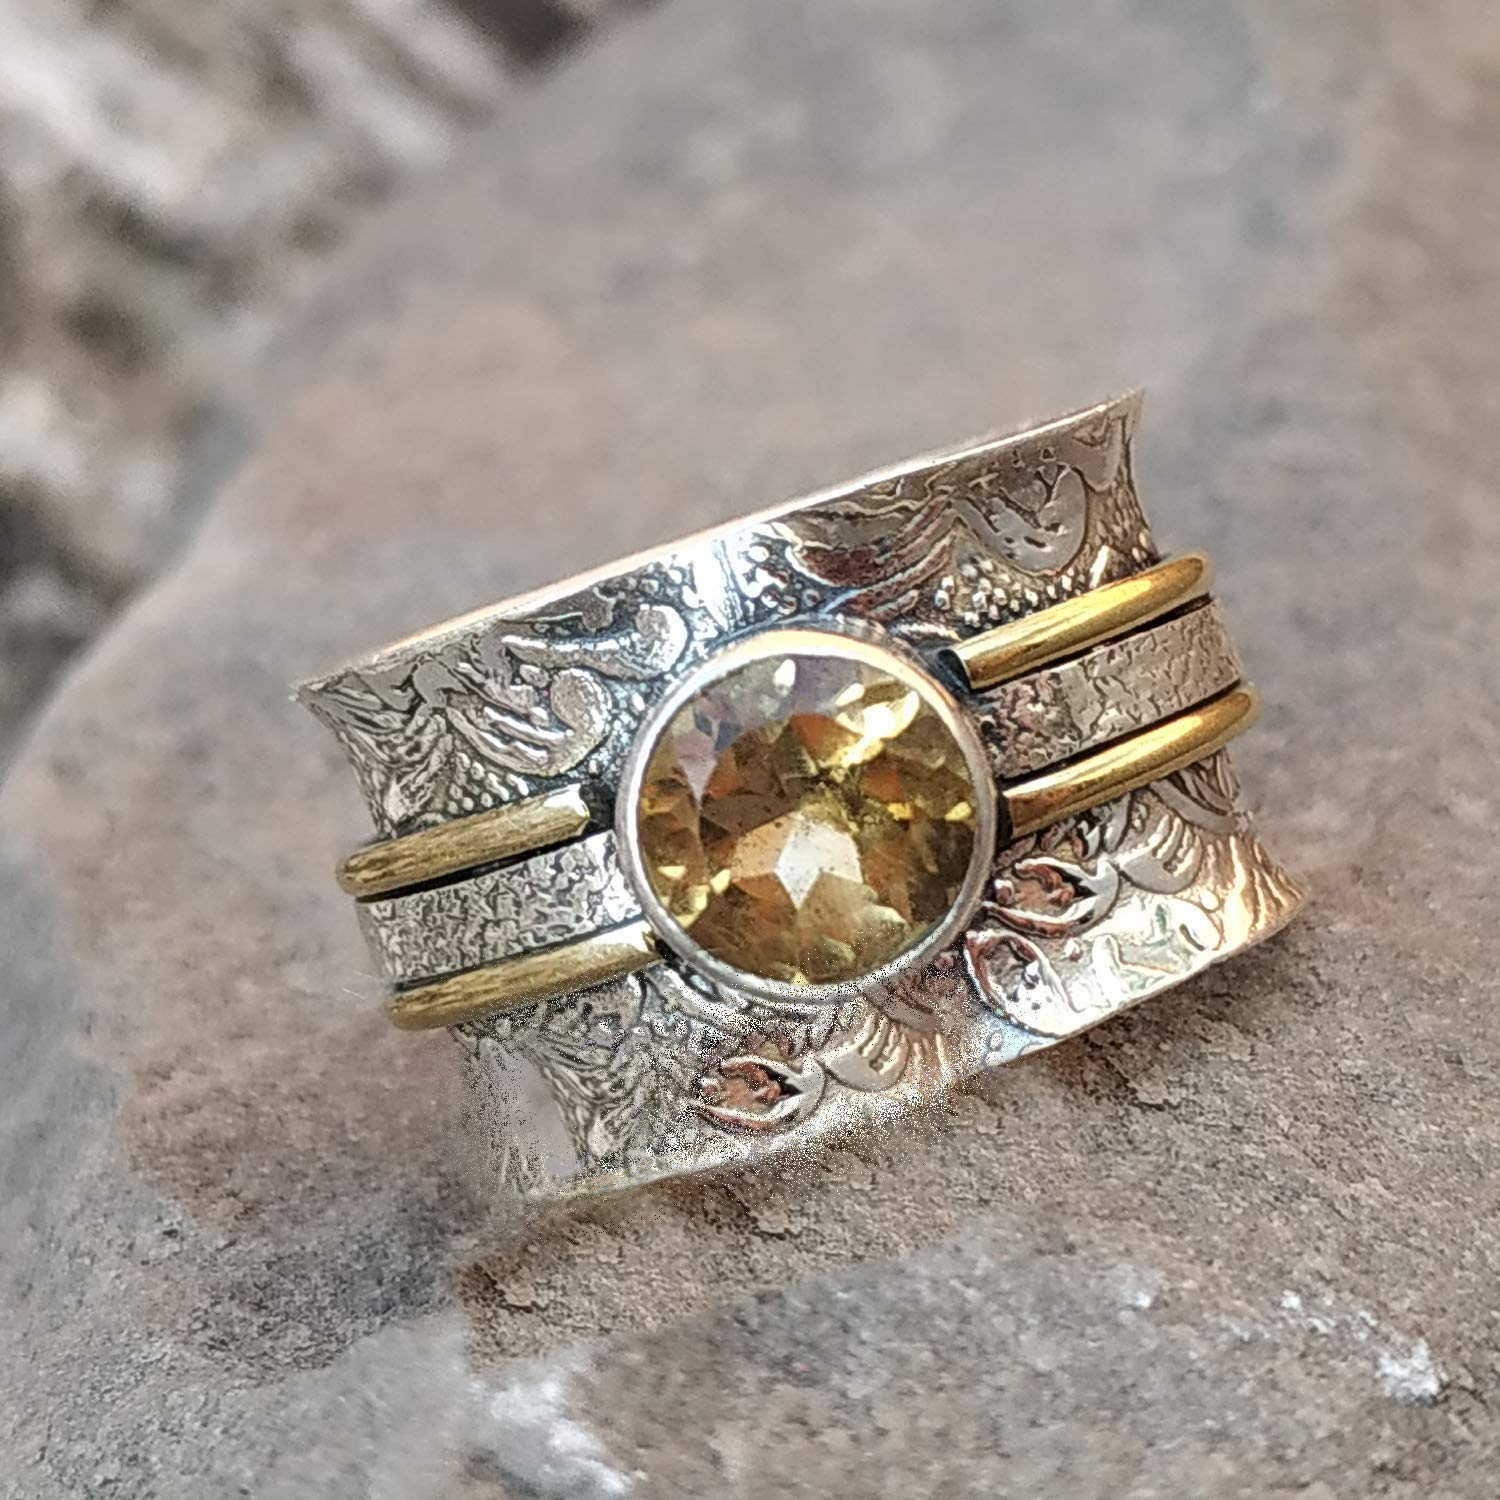 Handmade Ring Meditation Ring for Mothers Day Worry Ring Women Ring Rainbow Moonstone 925 Silver Ring